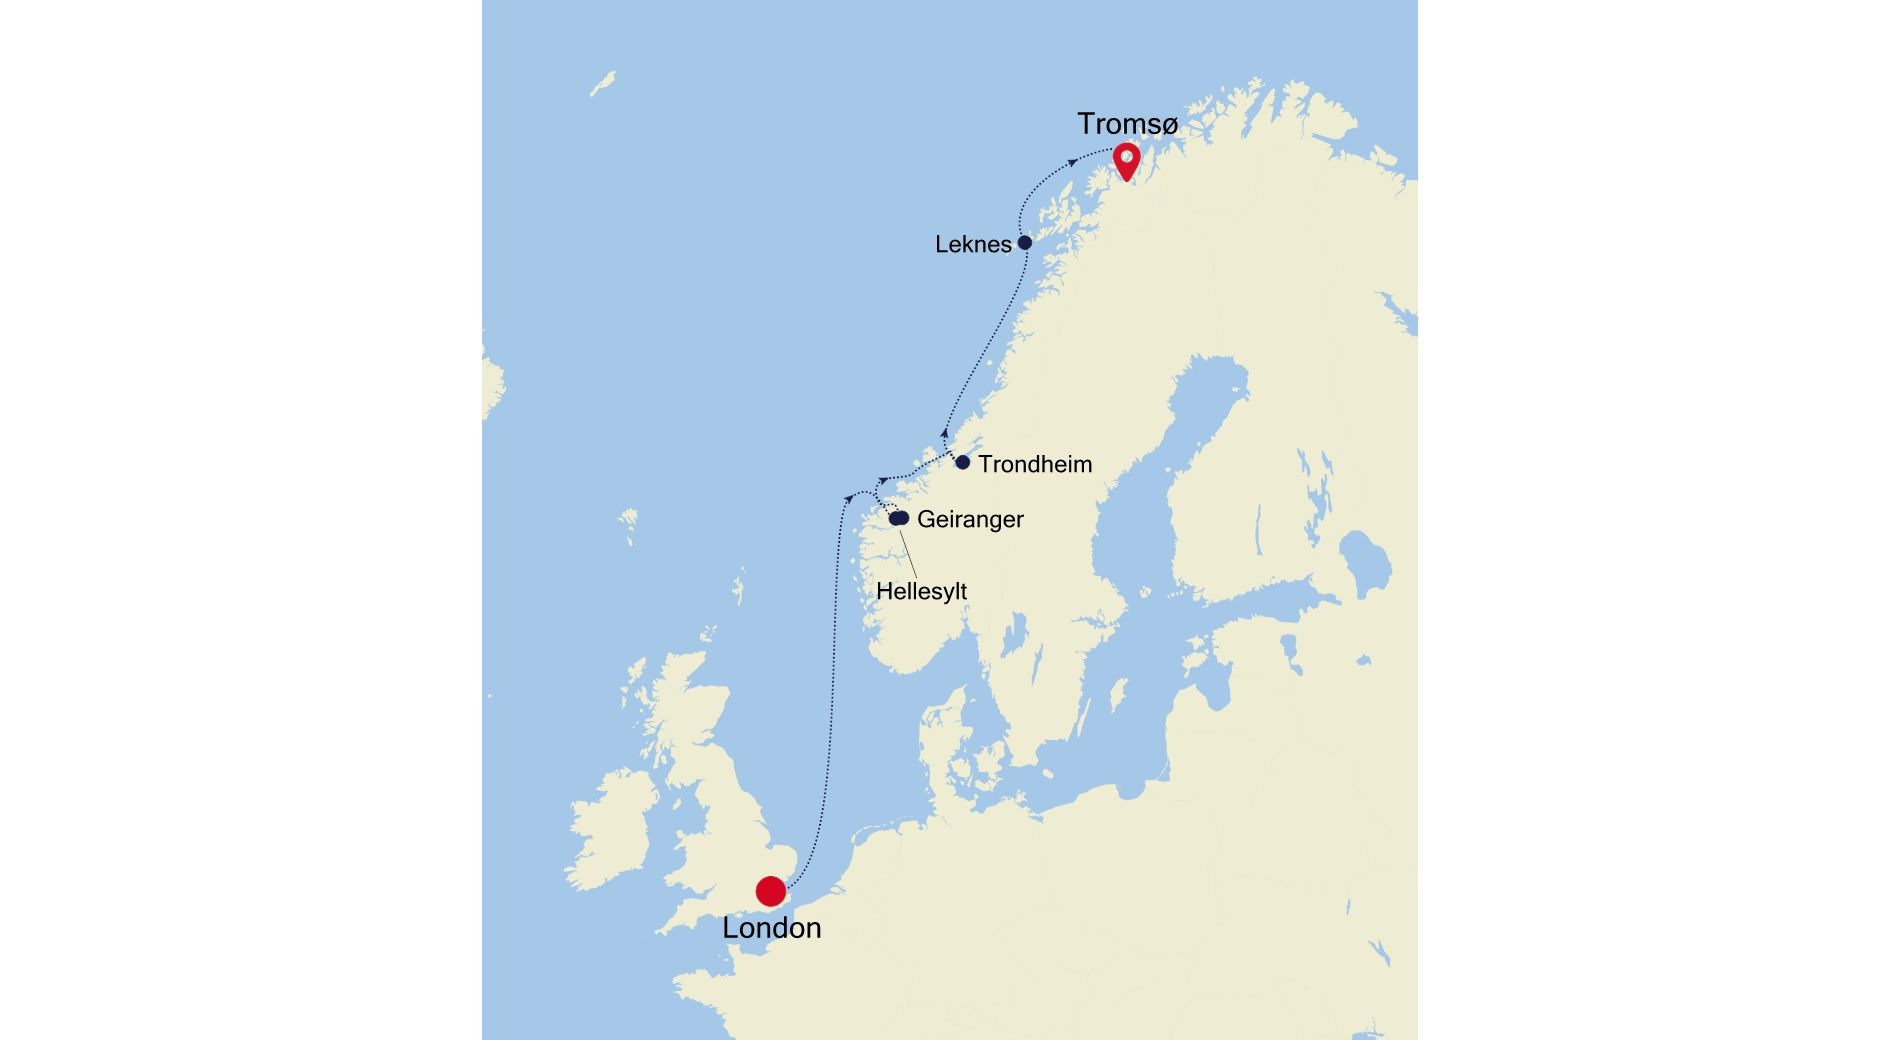 5917A - London to Tromsø